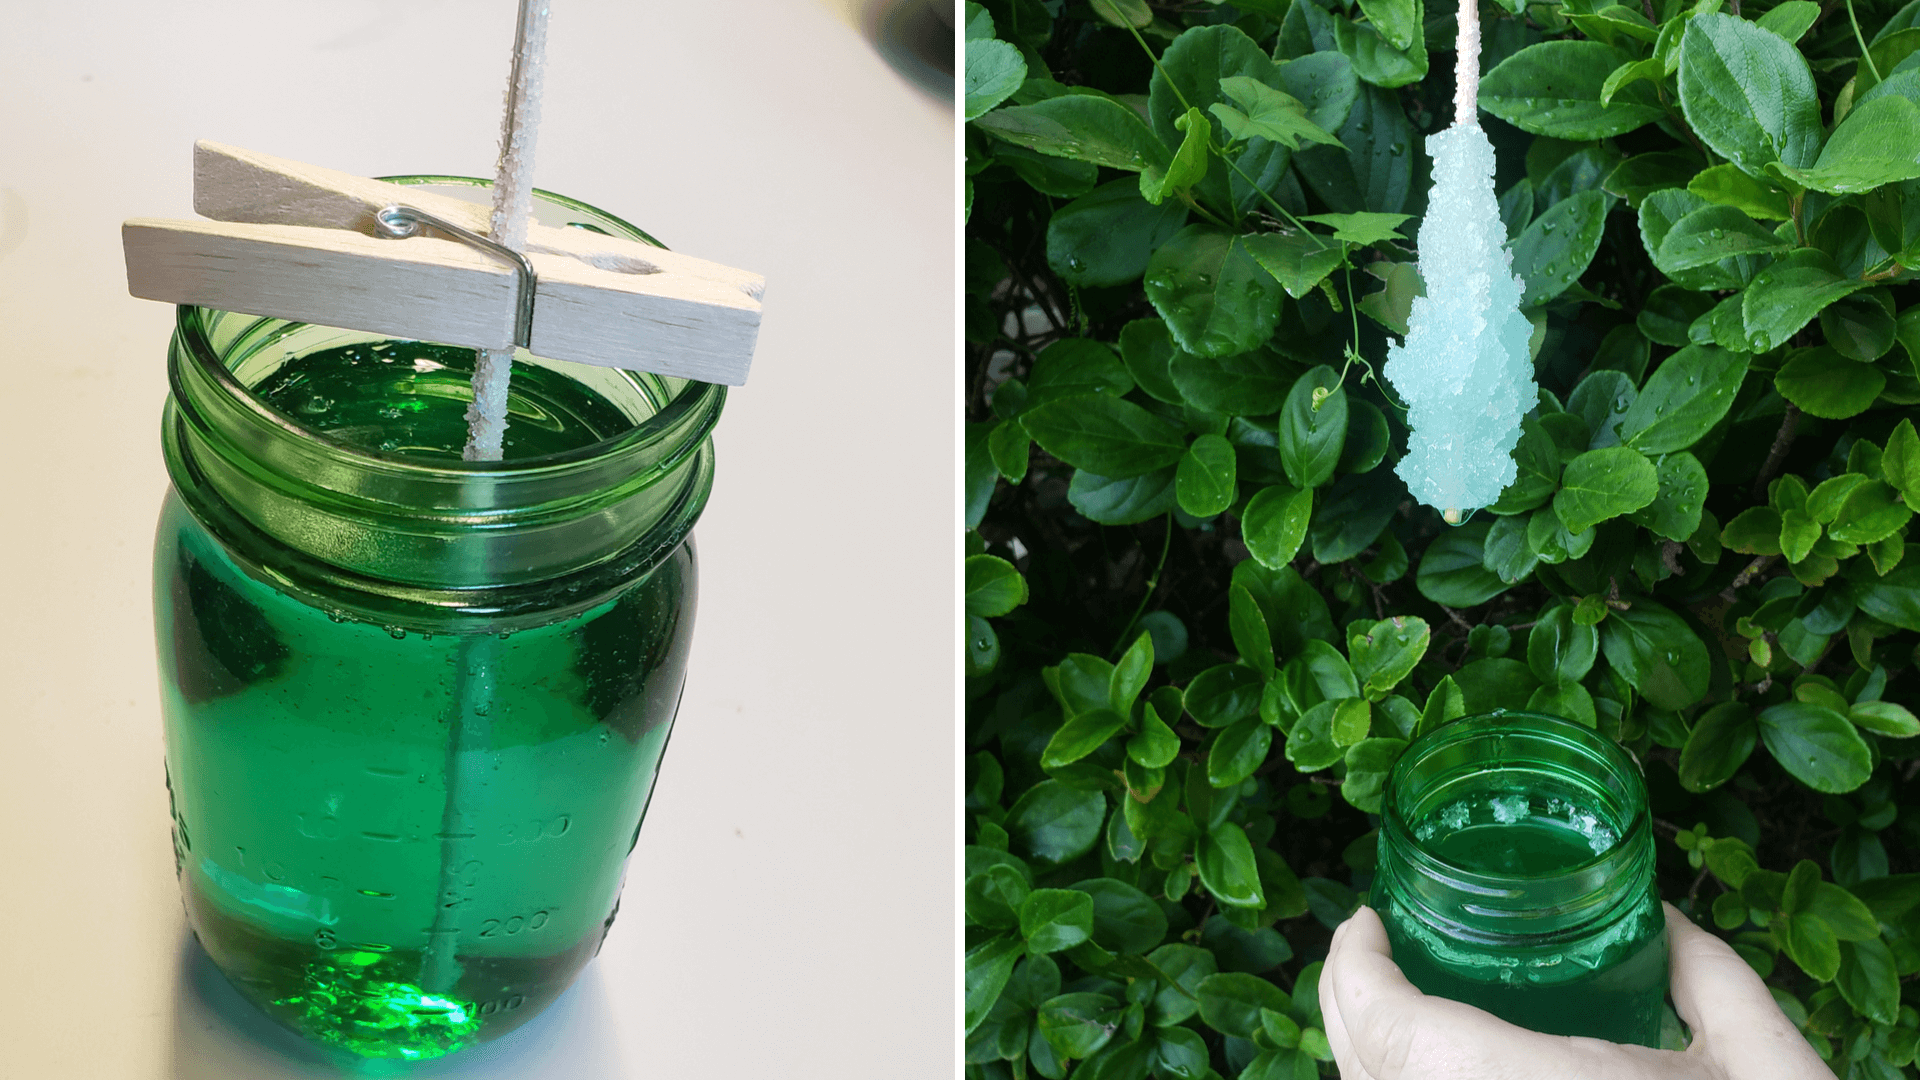 Science experiment to create rock candy